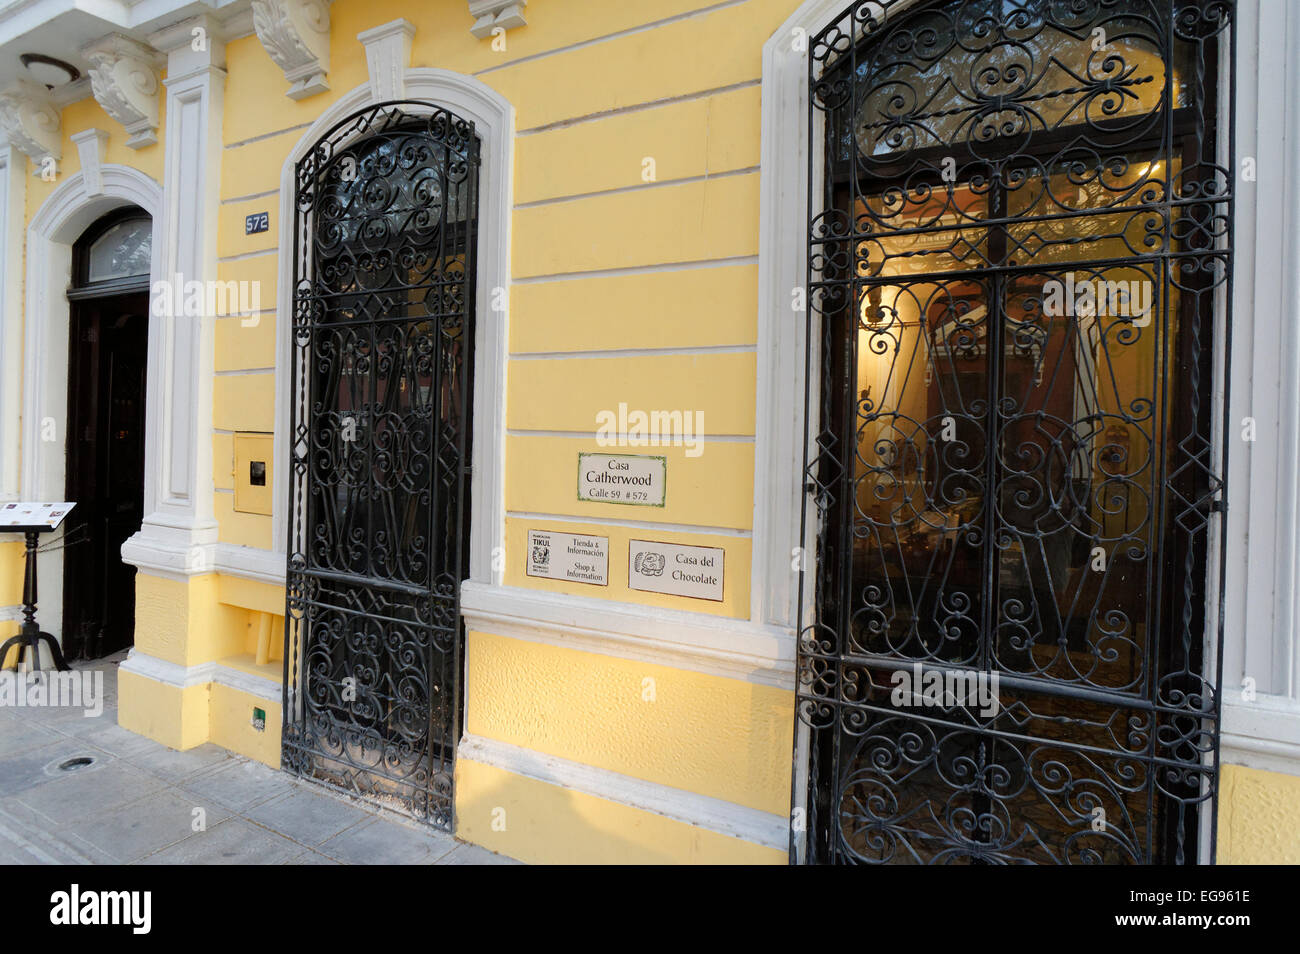 Exterior of the Casa Frederick Catherwood in Merida, Yucatan, Mexico Stock Photo